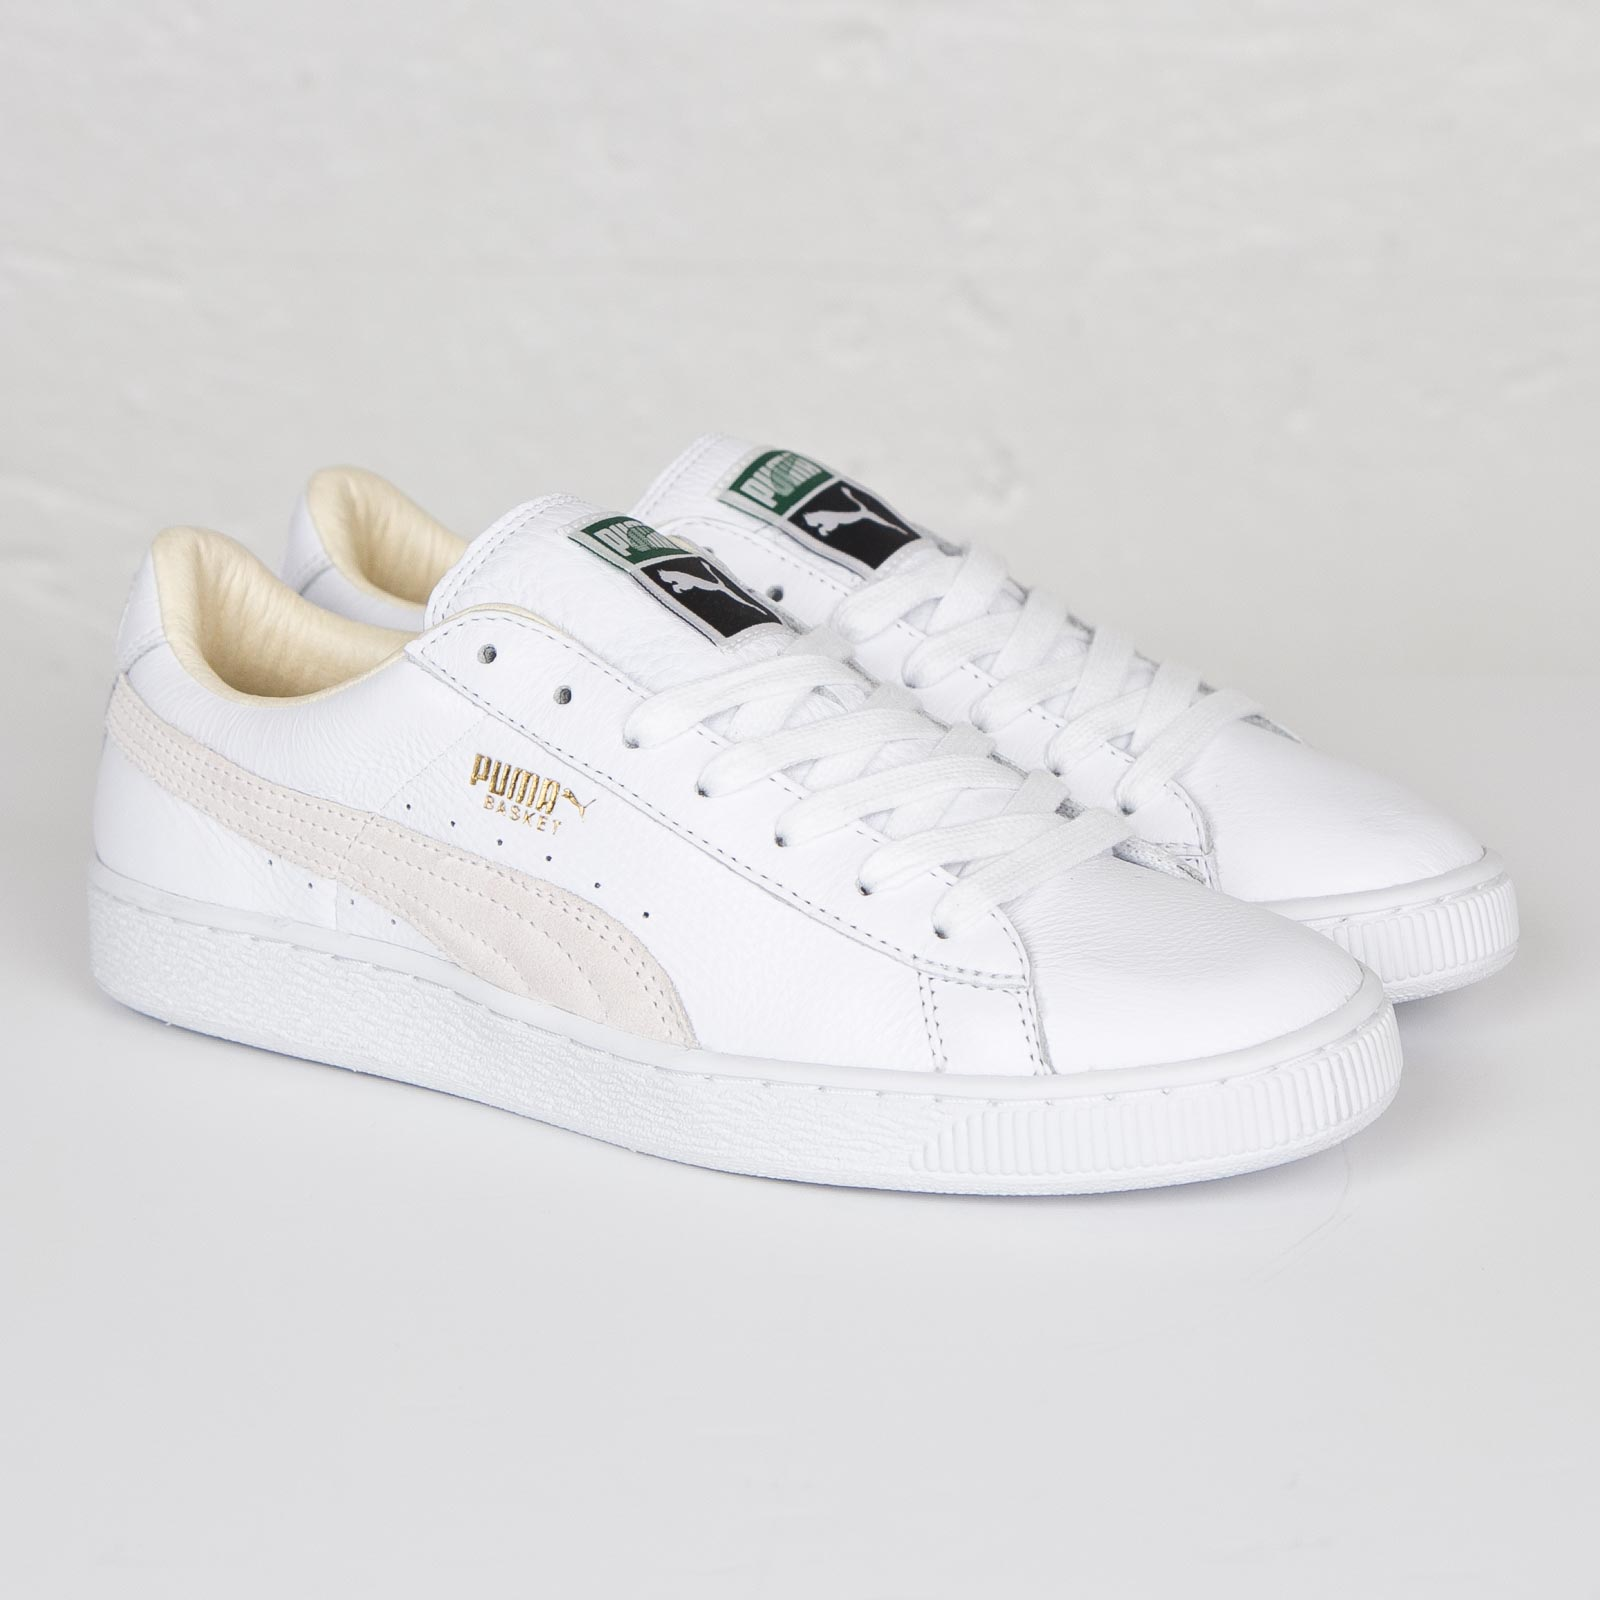 Puma Basket Classic 351912 30 Sneakersnstuff I Sneakers